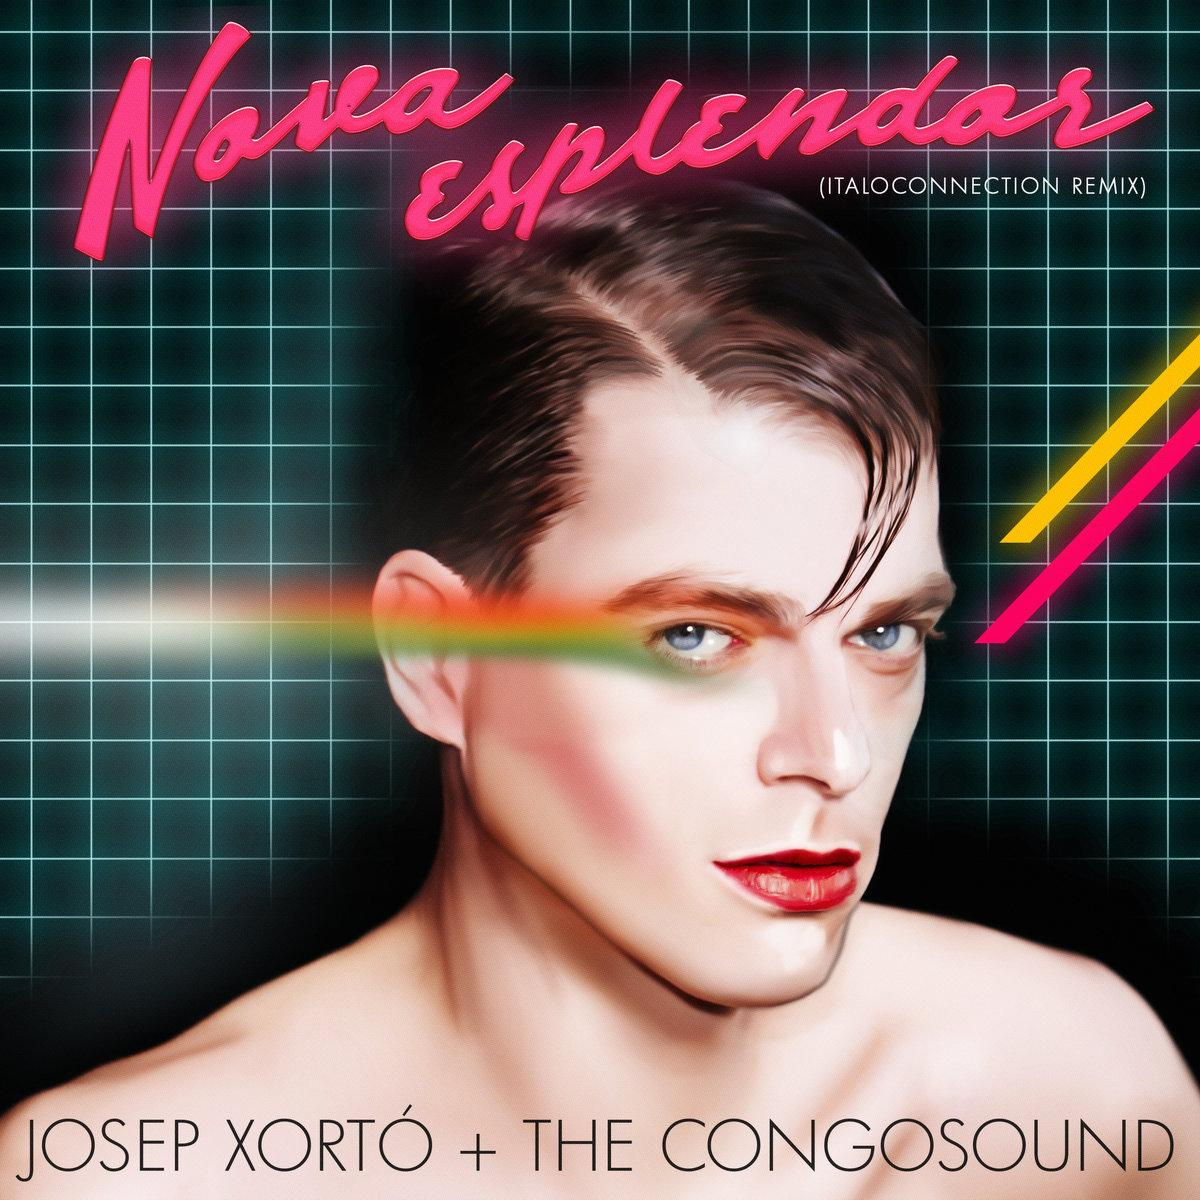 Josep Xortó + The Congosound  - Nova Esplendor (Italoconnection Remix)